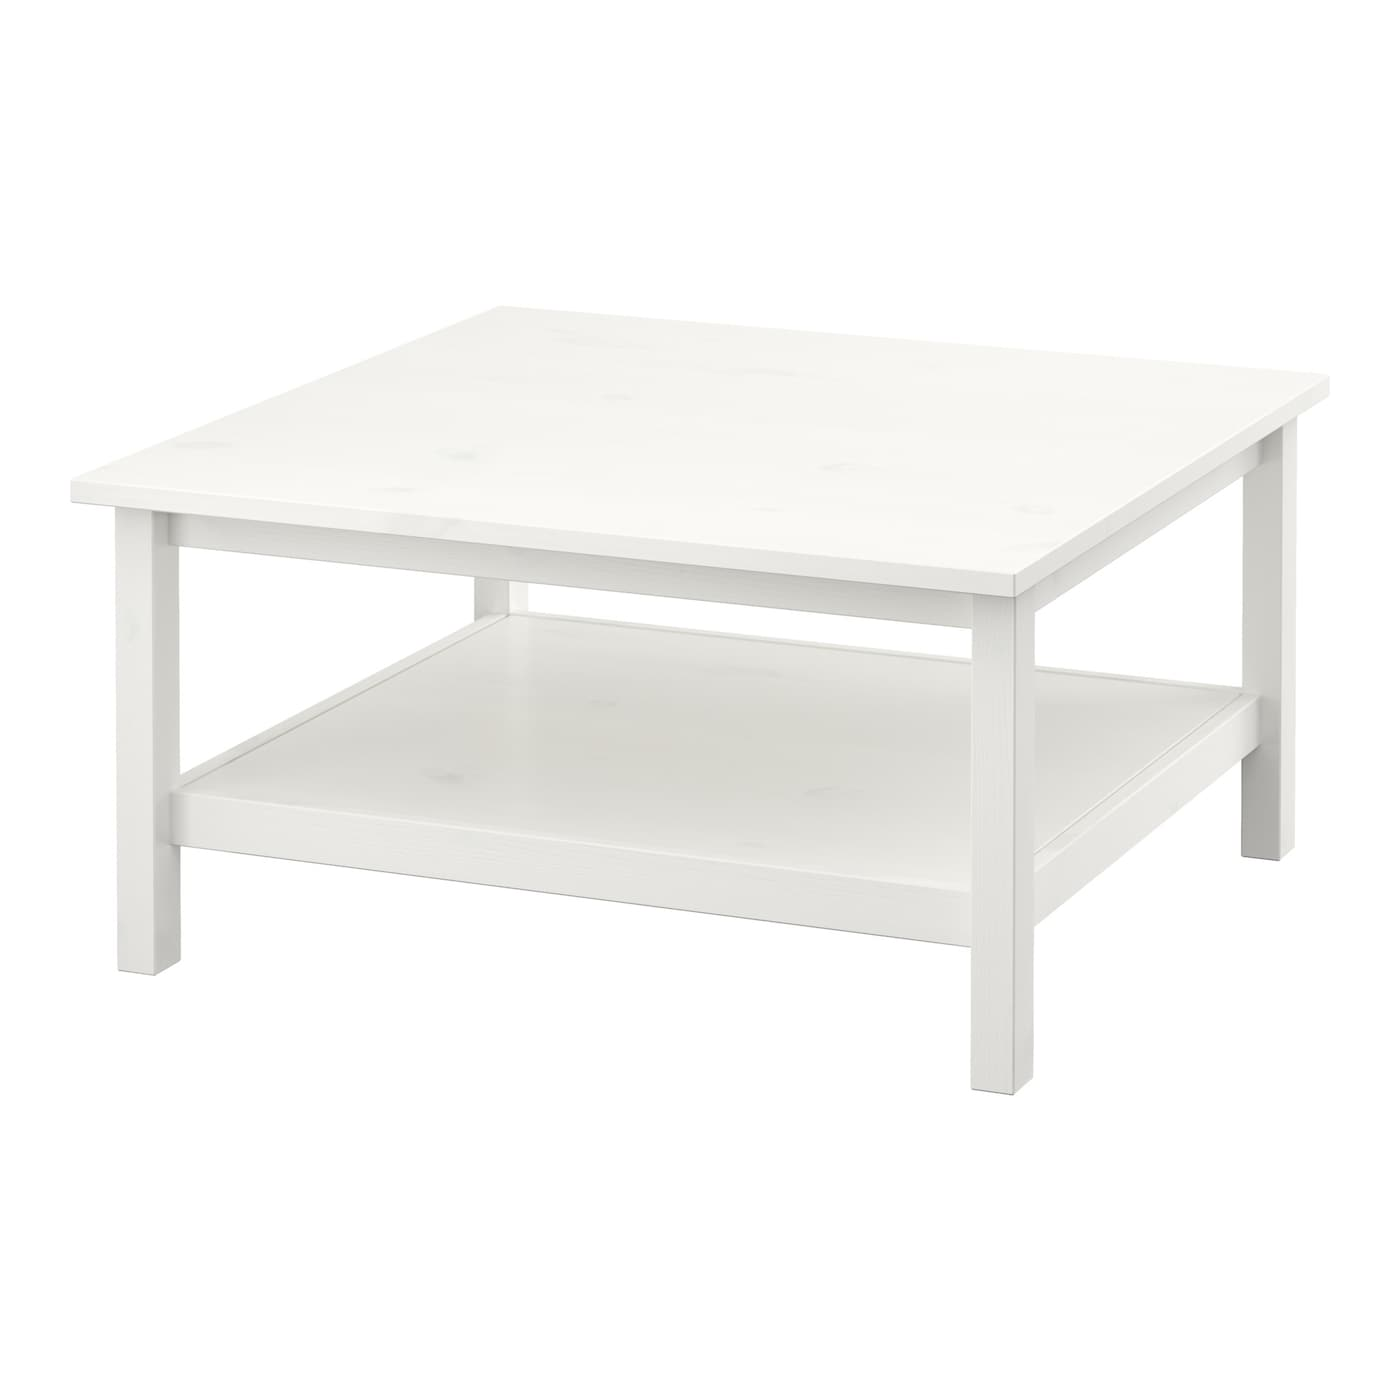 hemnes coffee table white stain 90x90 cm - ikea